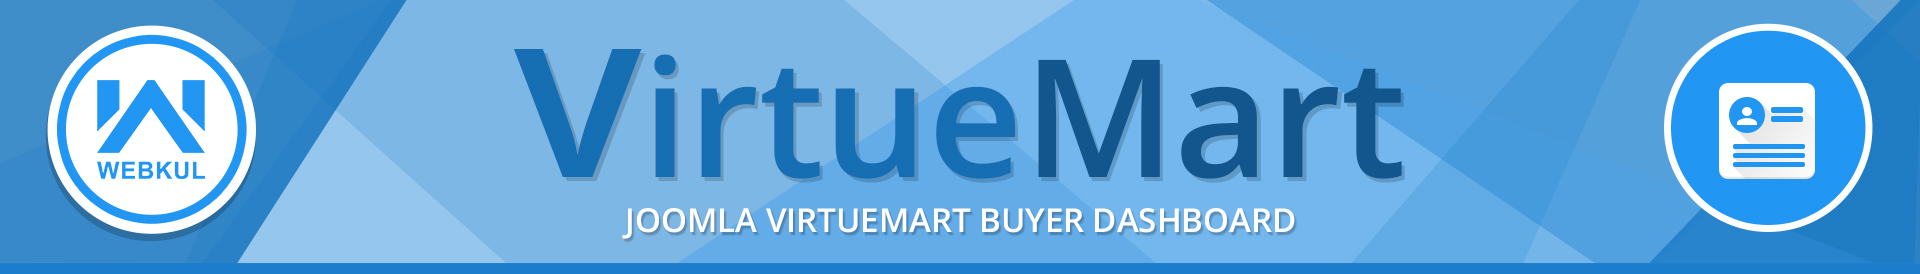 Joomla Virtuemart Buyer Dashboard